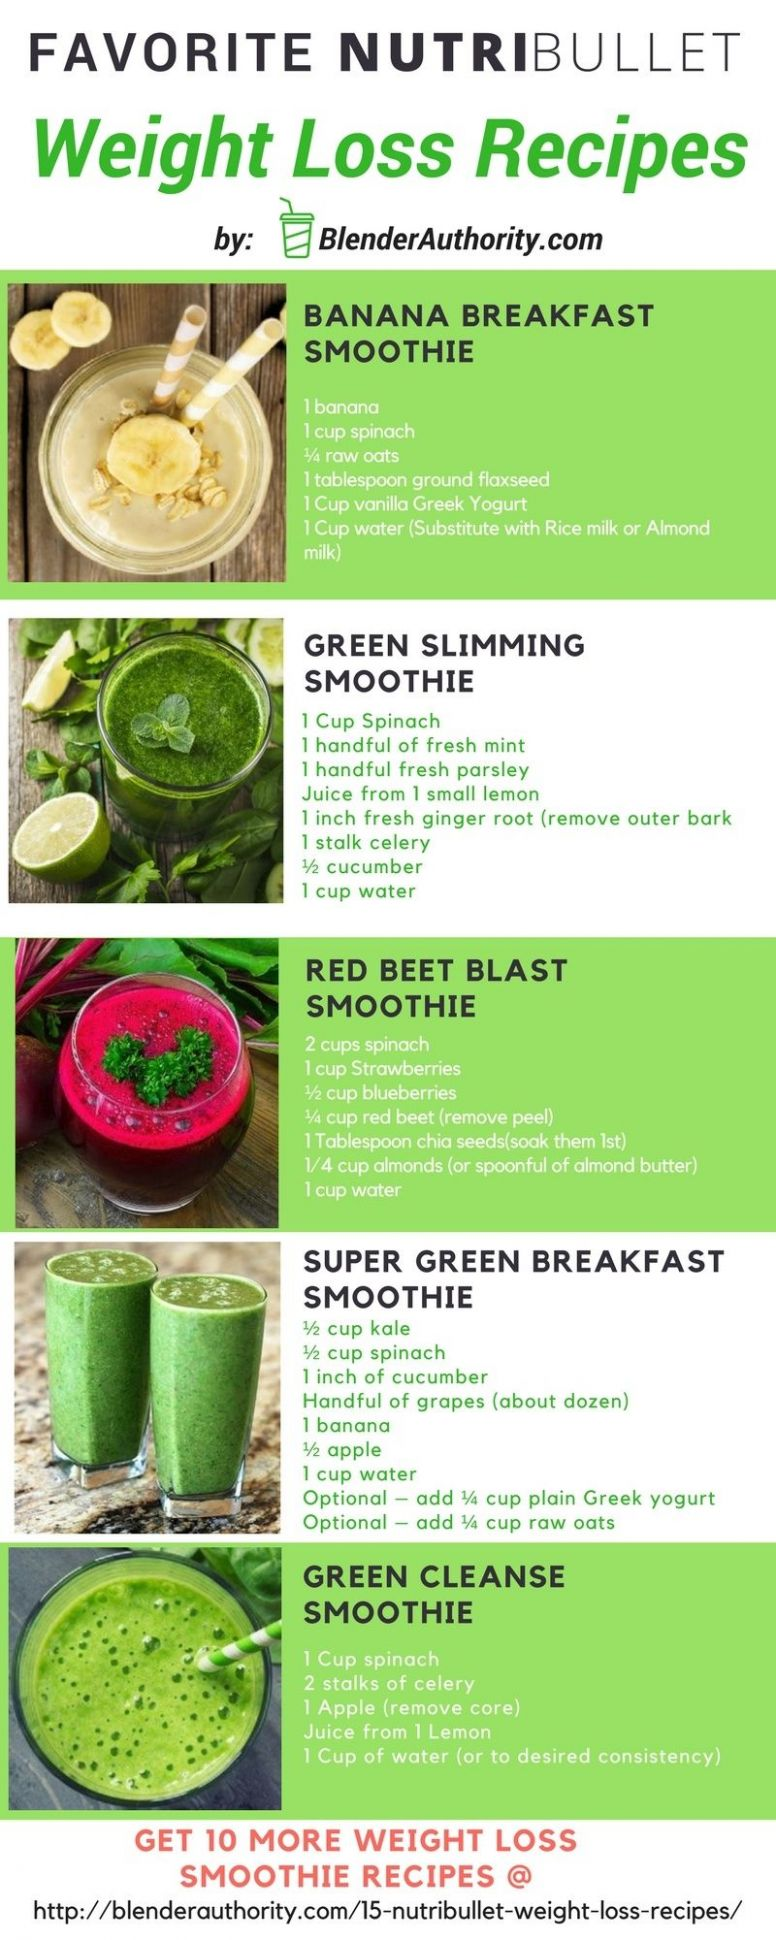 Pin on Weight Loss Smoothies - Weight Loss Nutribullet Recipes Uk